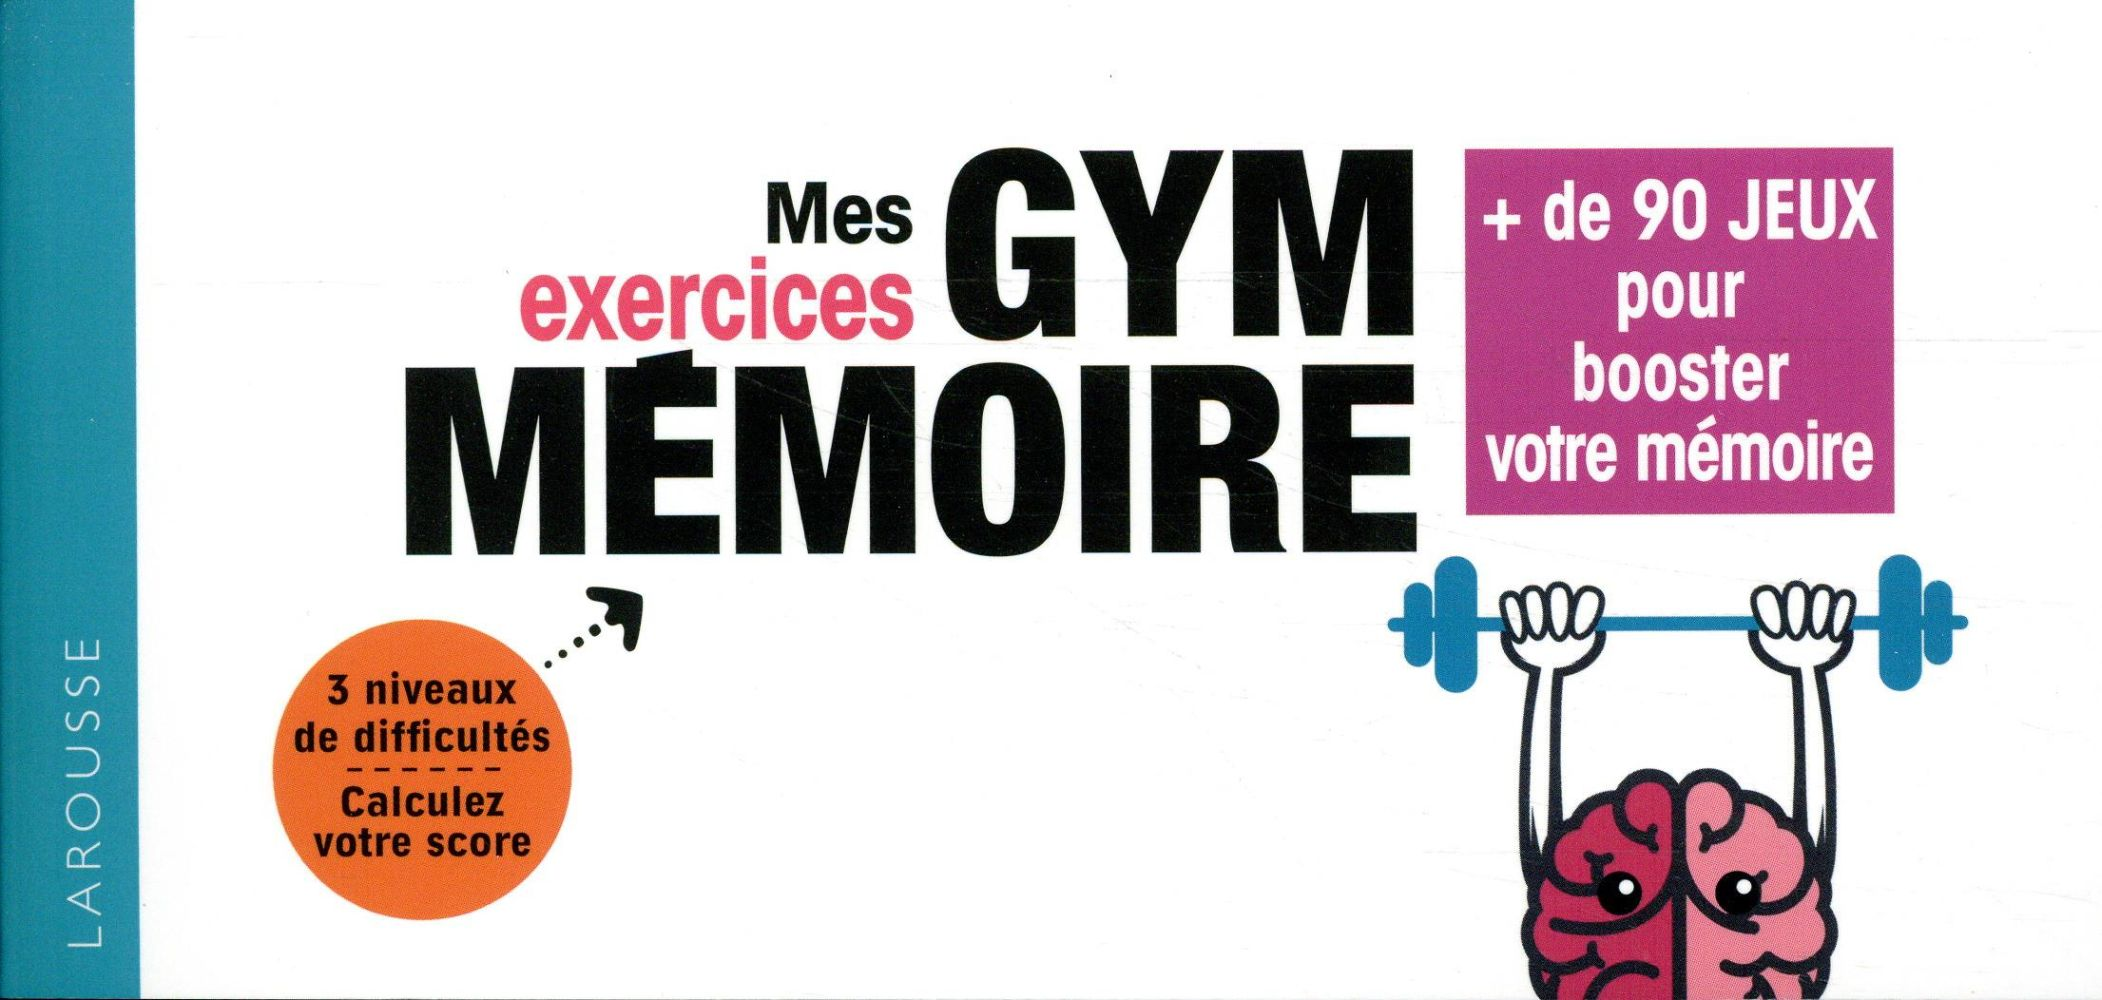 MES EXERCICES GYM MEMOIRE